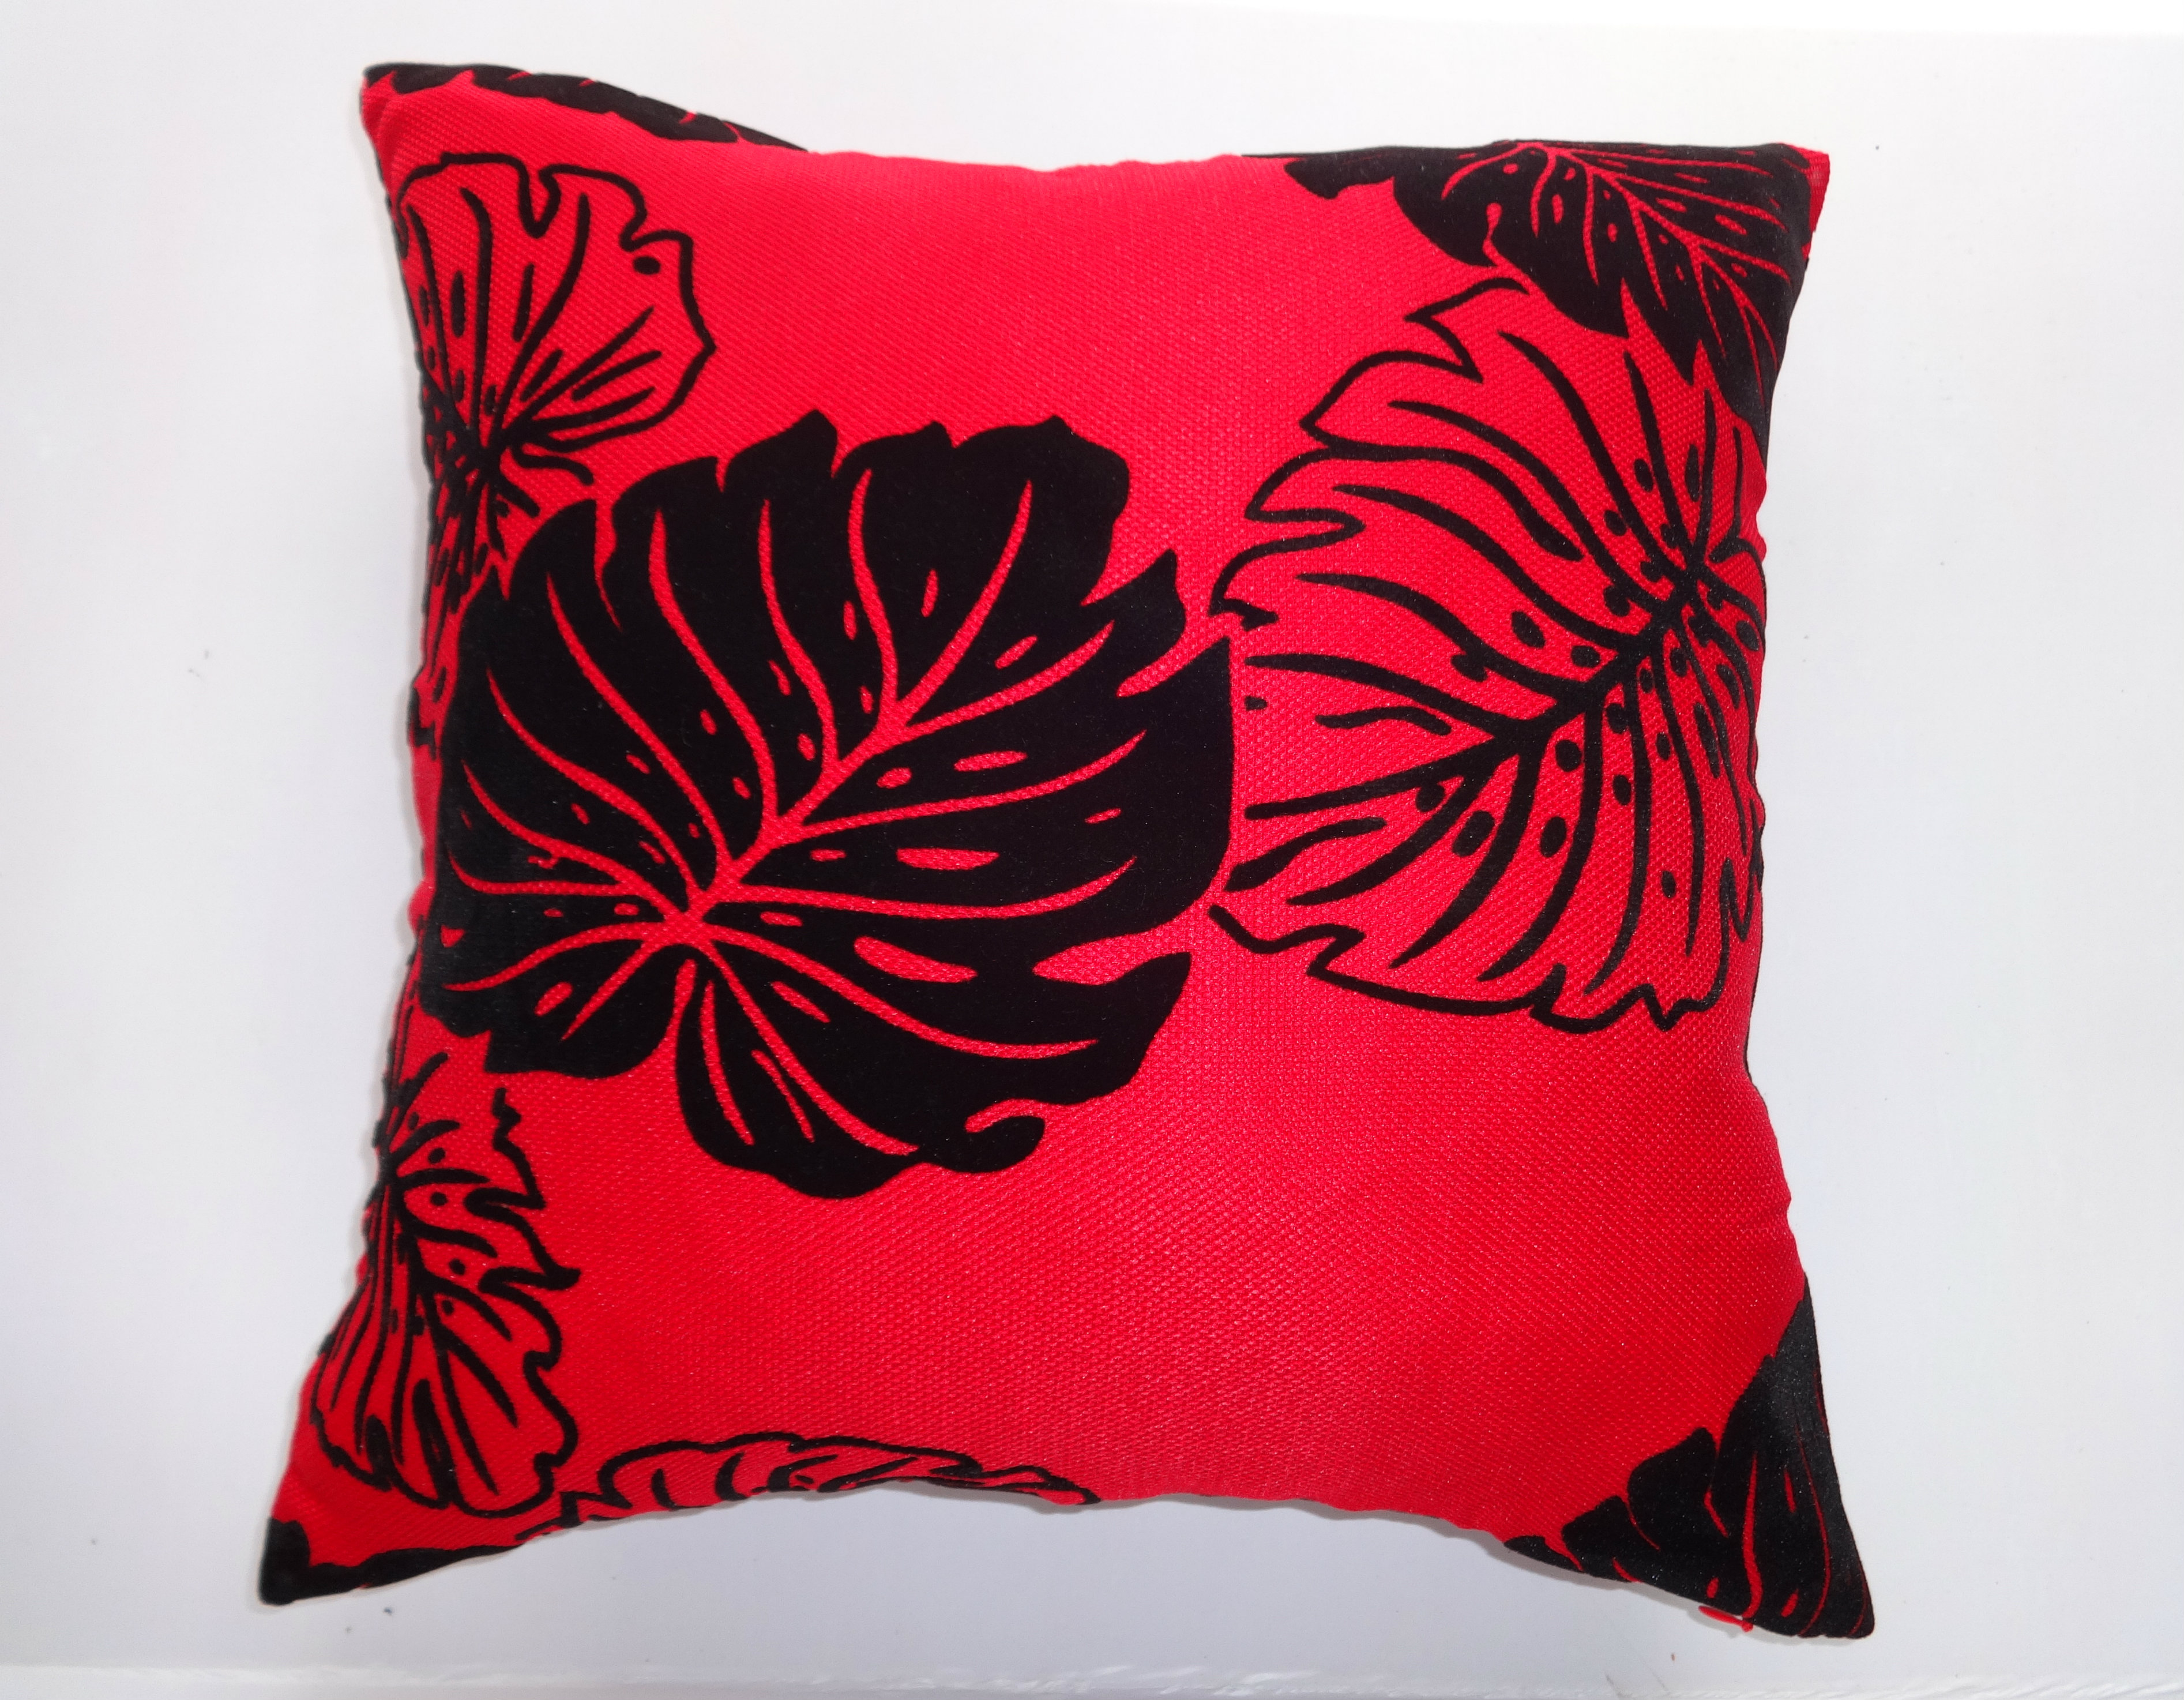 A super soft luxury black leaf medium size red cushion cover with a design that's good enough for any room. This red motif design cushion cover gives you an easy way to upgrade your sofa quickly. It's also ideal for bedrooms, living rooms, any easy-chairs and choosing in pairs adds a touch of style to any of your rooms.